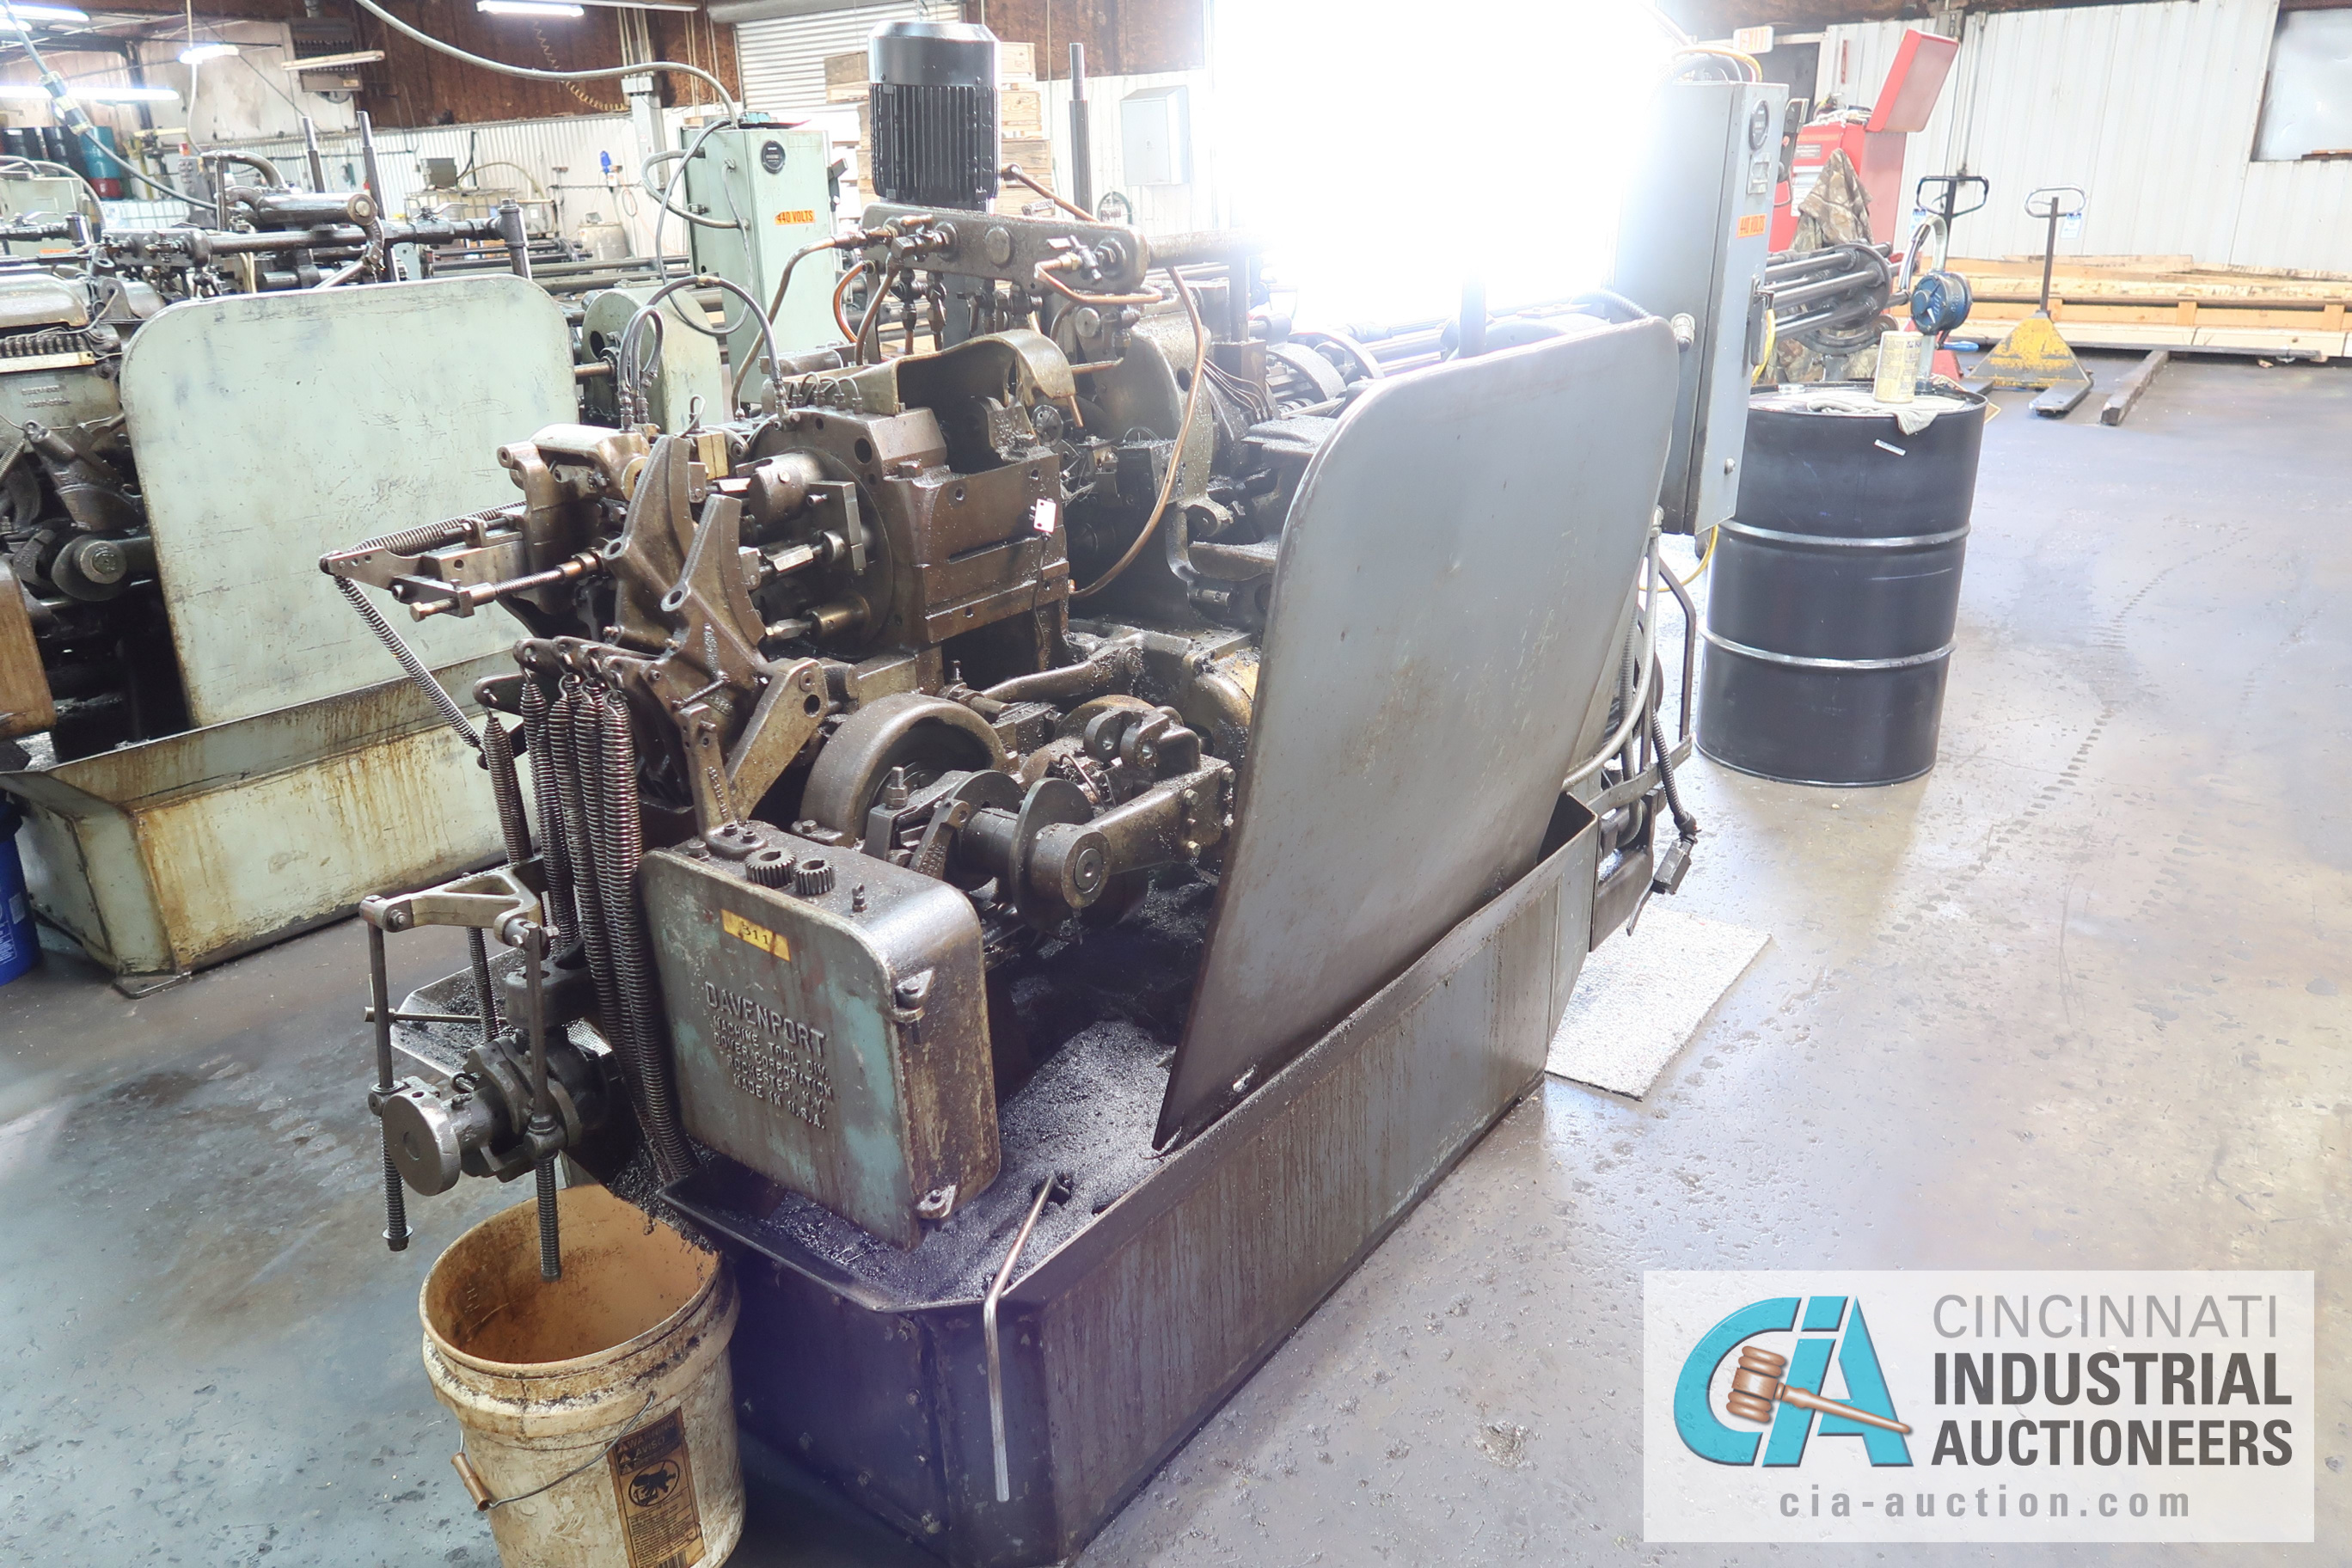 """Lot 7 - 3/4"""" DAVENPORT 5-SPINDLE SCREW MACHINE; S/N 4172 (NEW 10-1960), WITH PICK OFF, DEBURR, 4TH POS."""